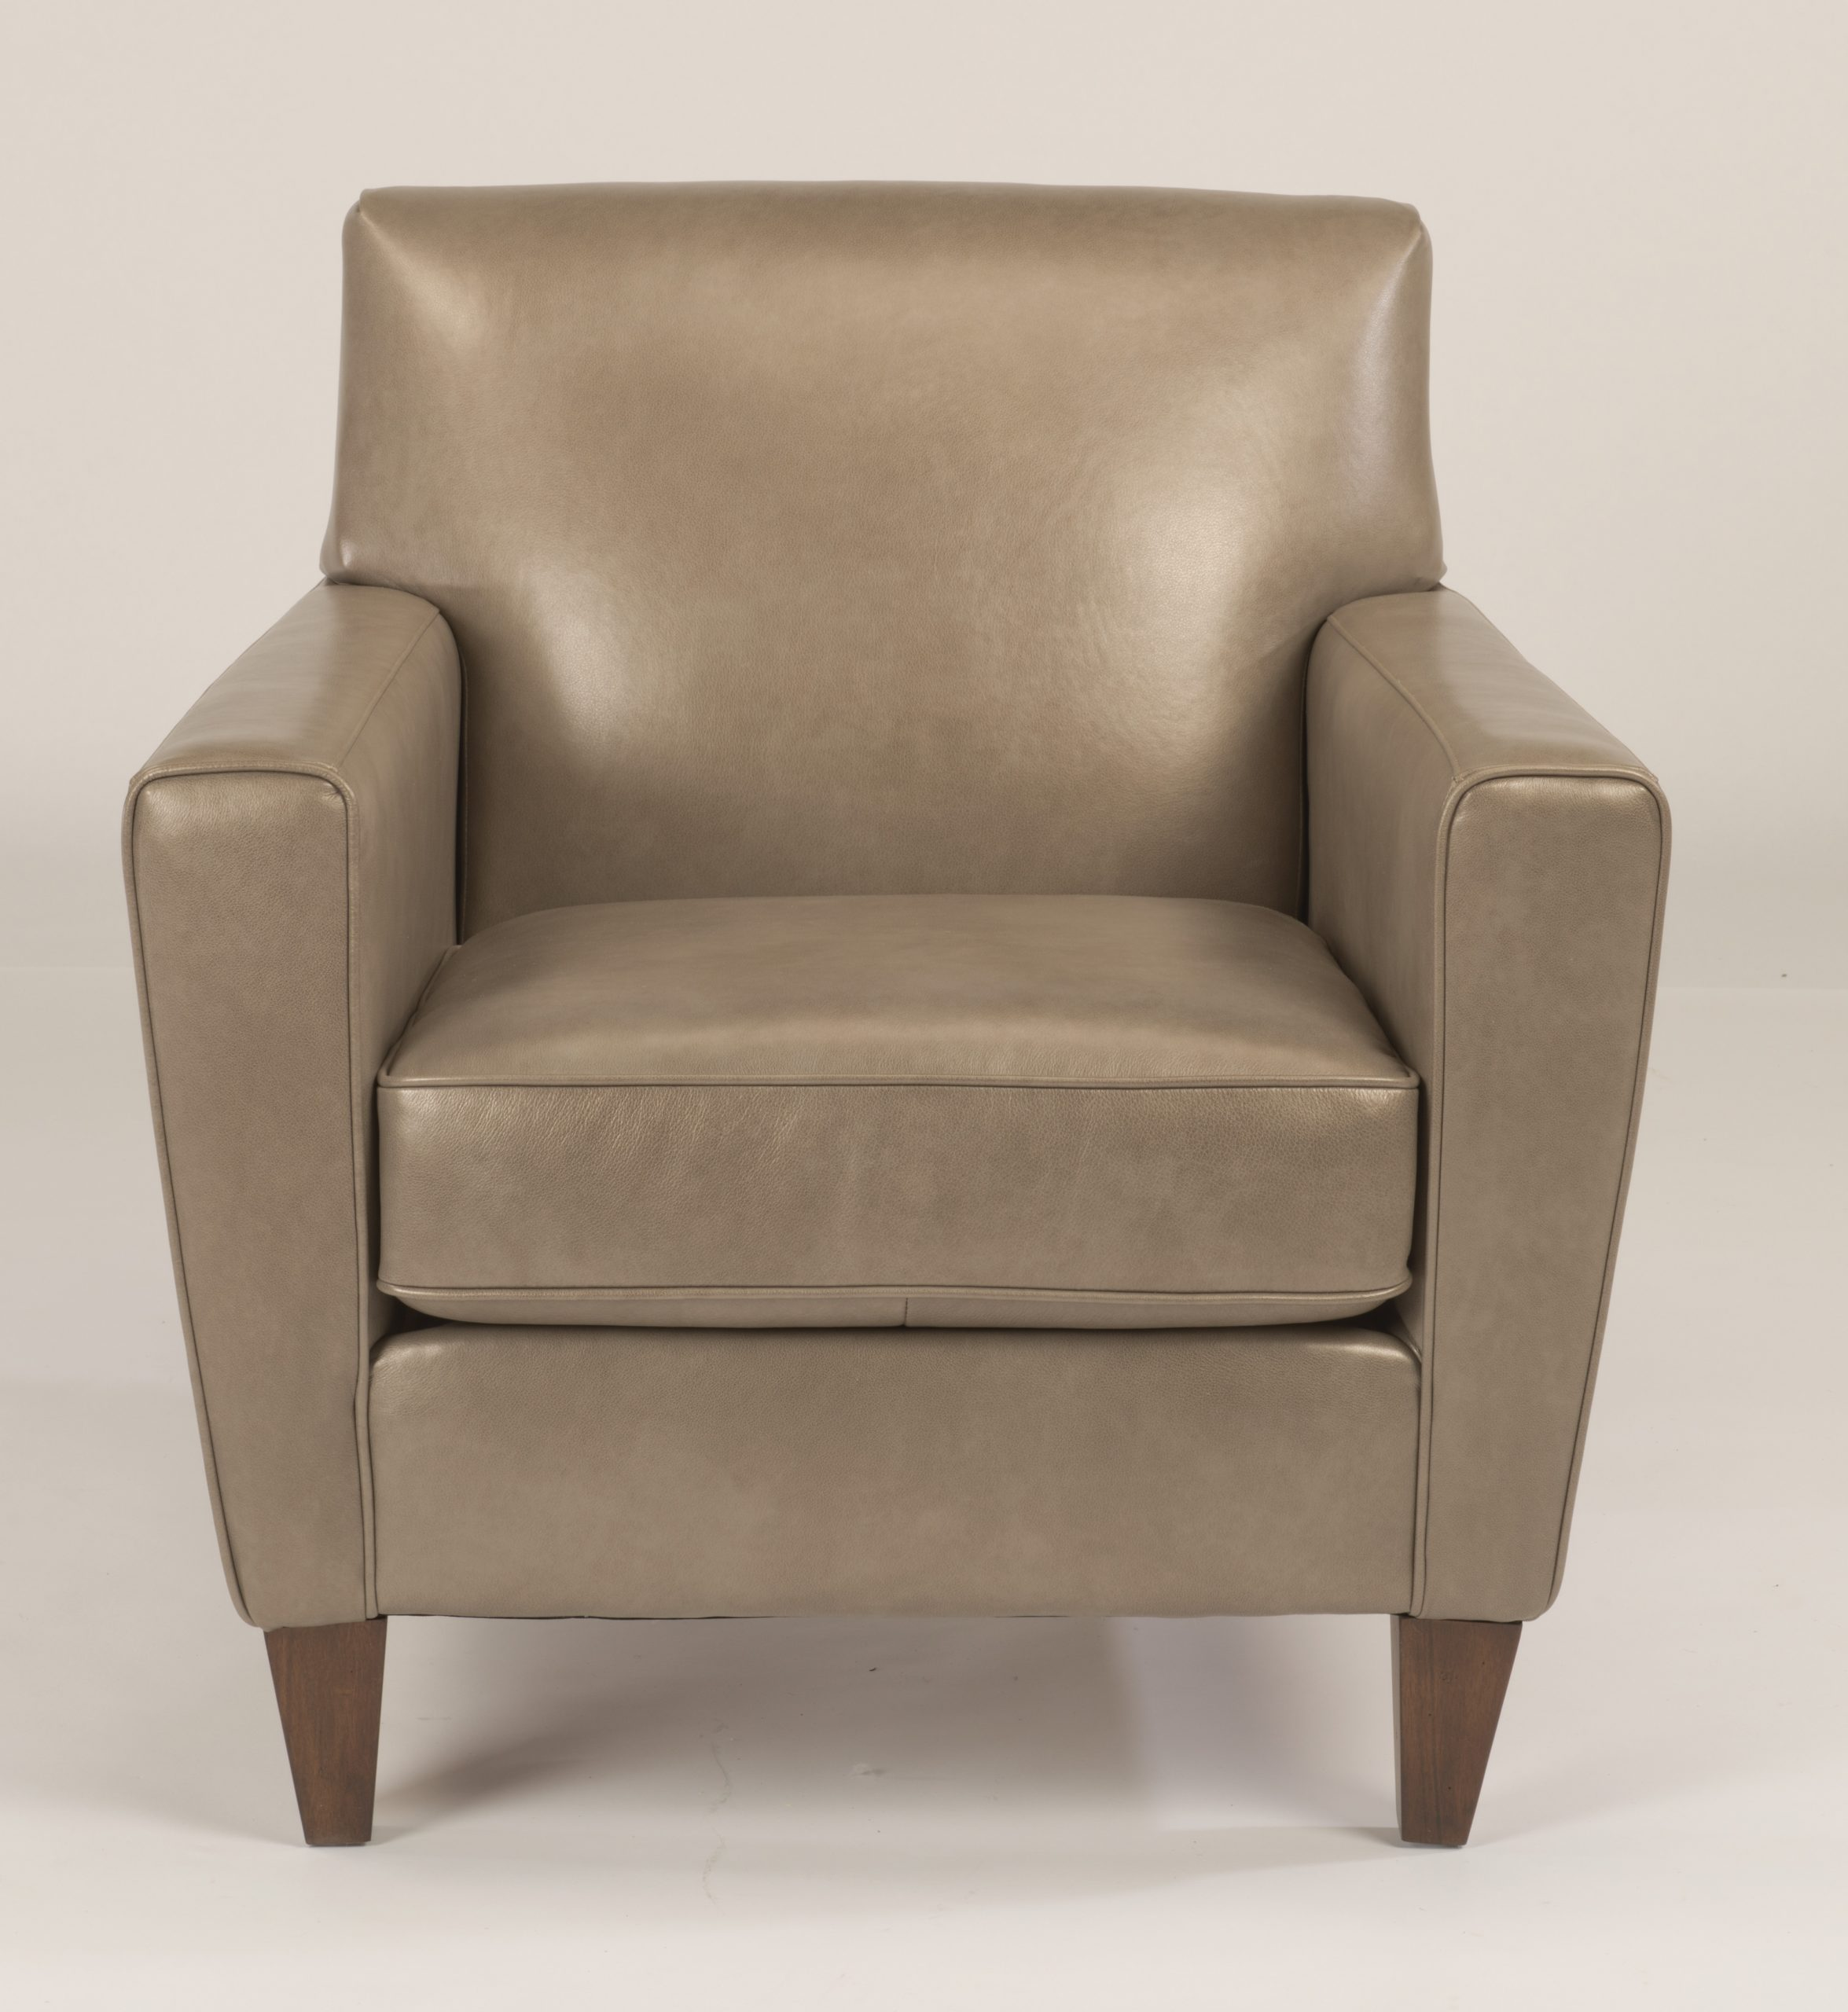 Flexsteel Digby Arm Chair